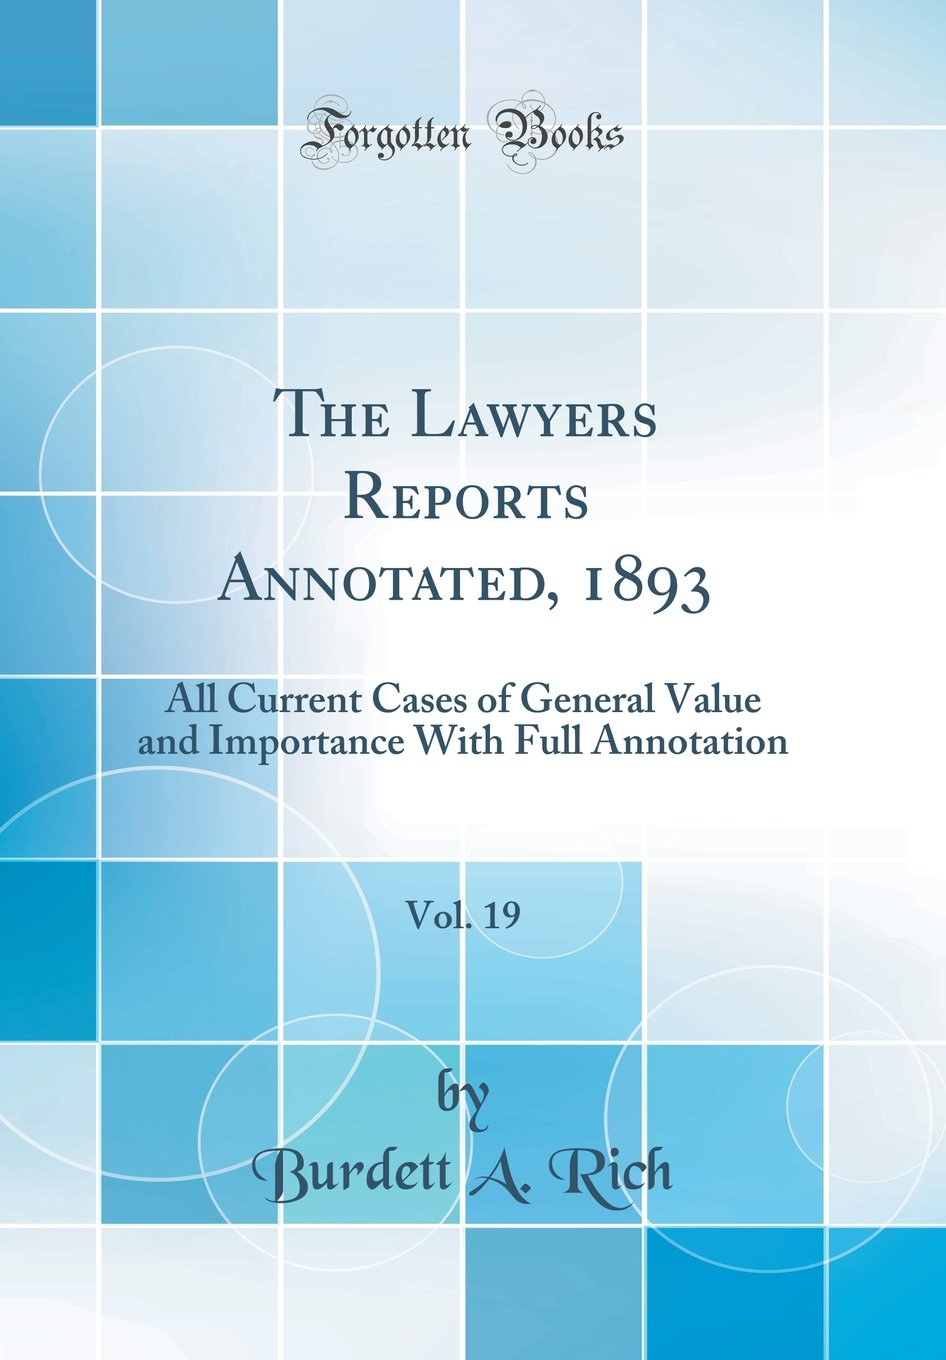 The Lawyers Reports Annotated, 1893, Vol. 19: All Current Cases of General Value and Importance with Full Annotation (Classic Reprint) pdf